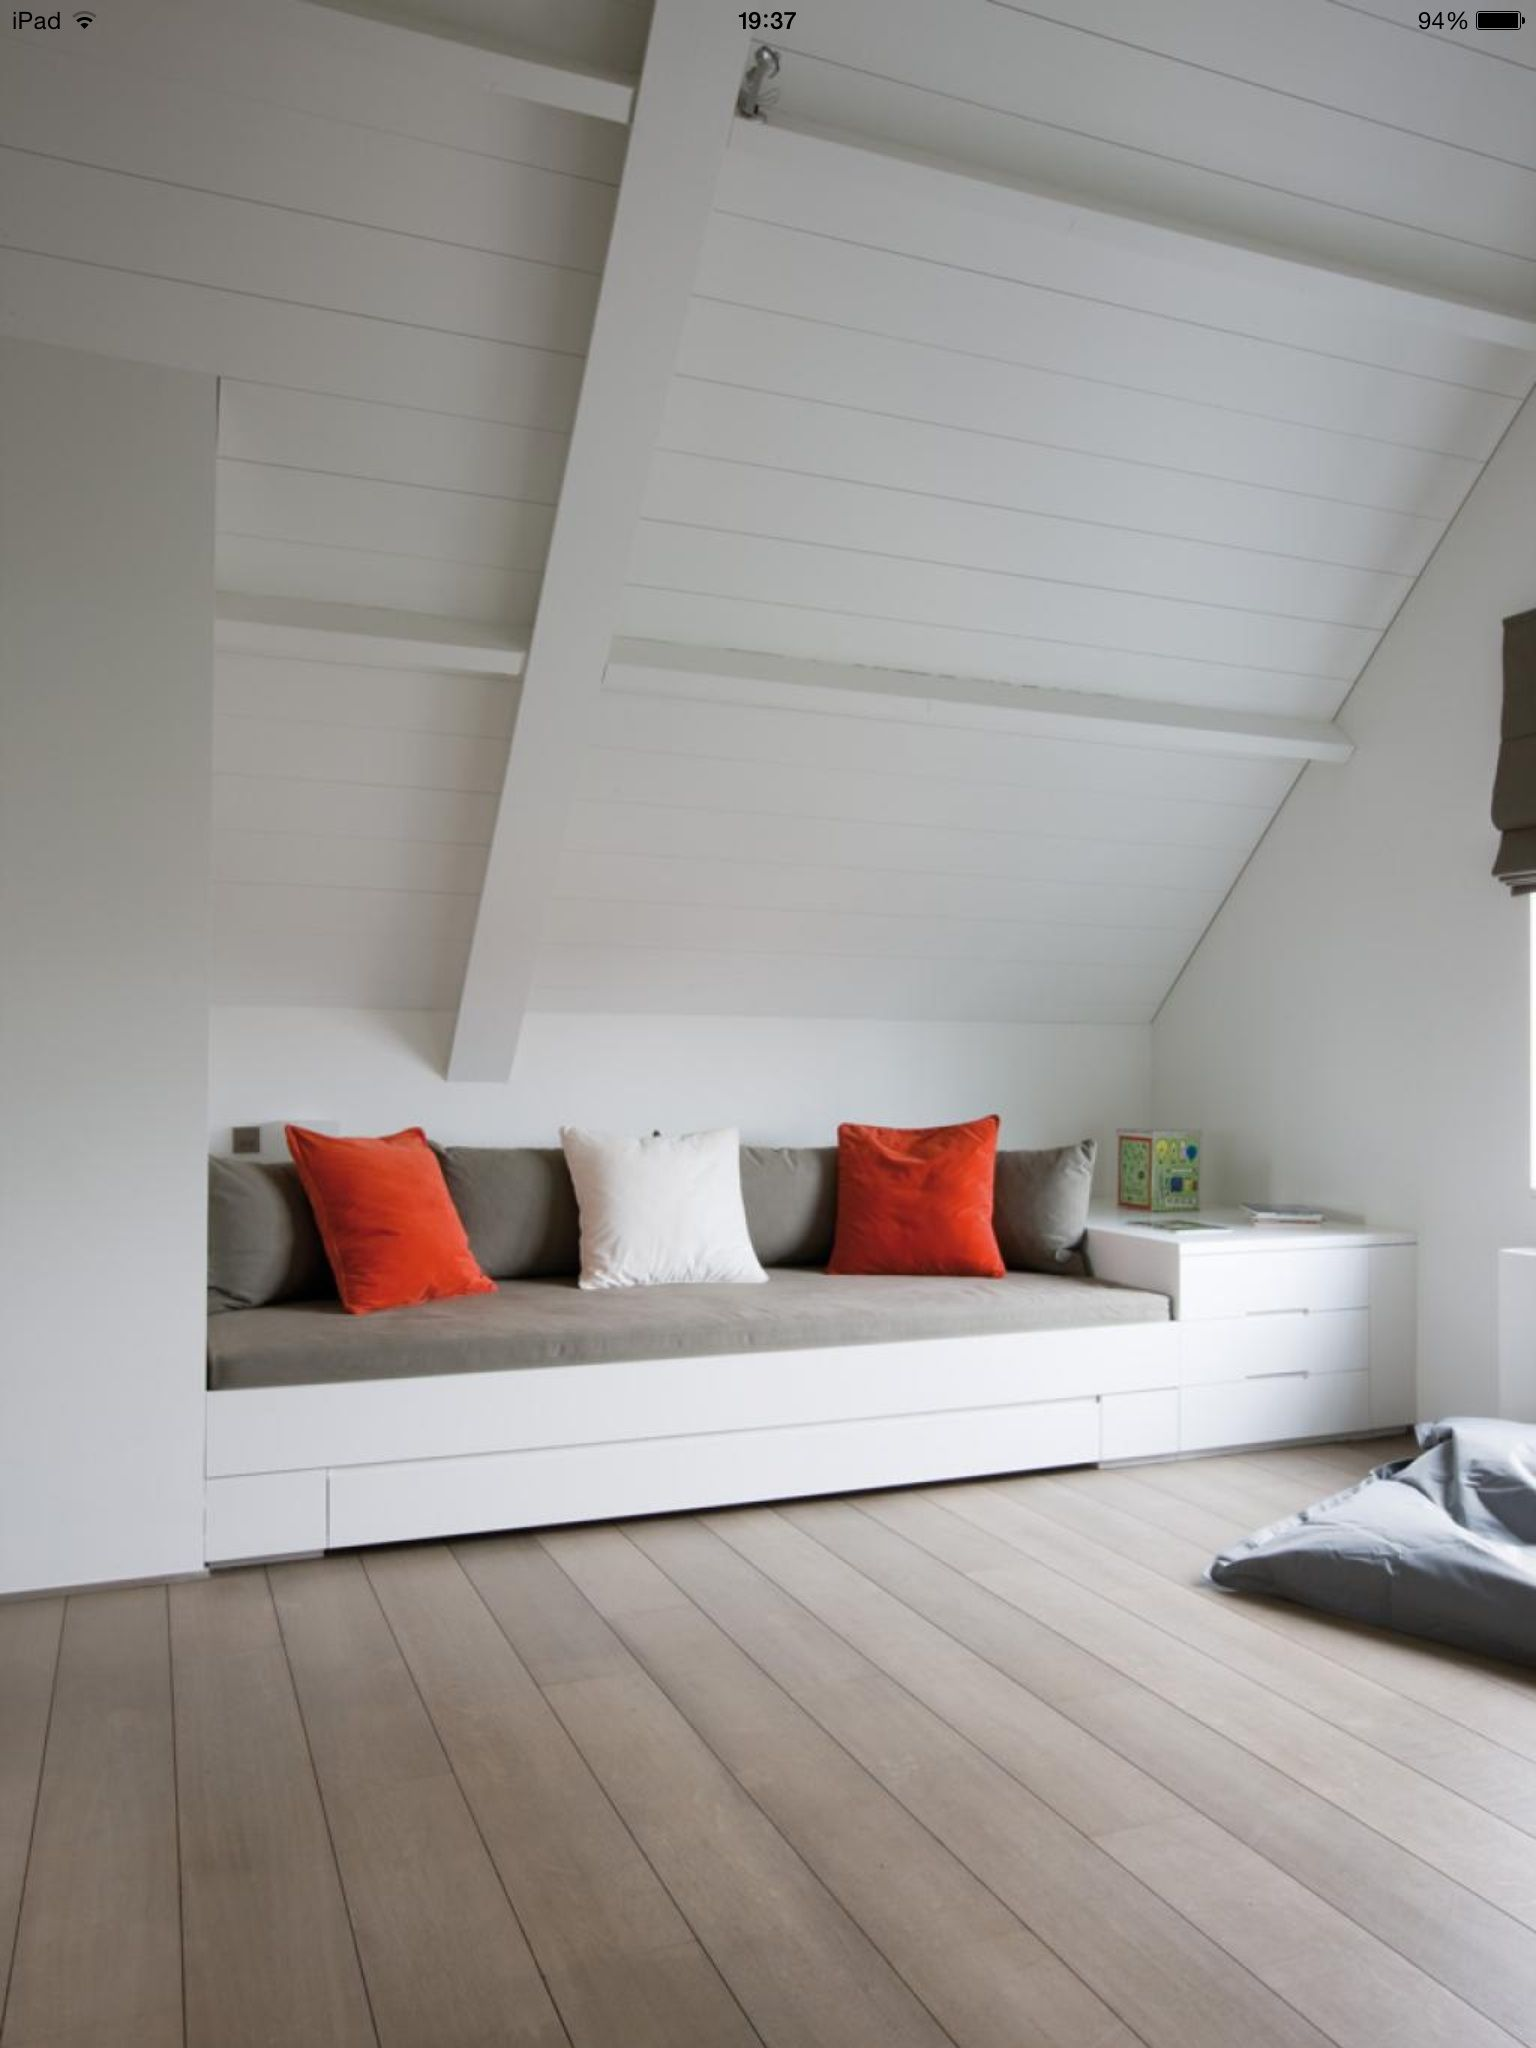 Small attic loft bedroom ideas  Built in seats are awesome esp in harder spaces Vinokatto matala